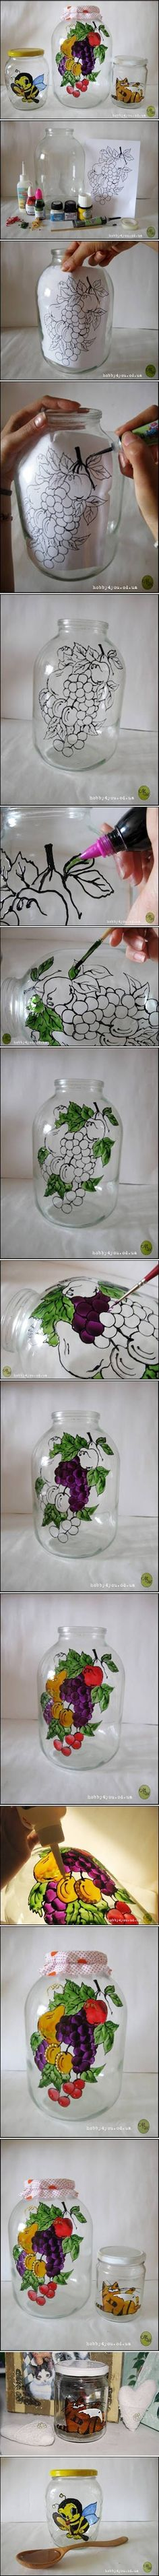 Jar Art DIY 412 best ONE STROKE